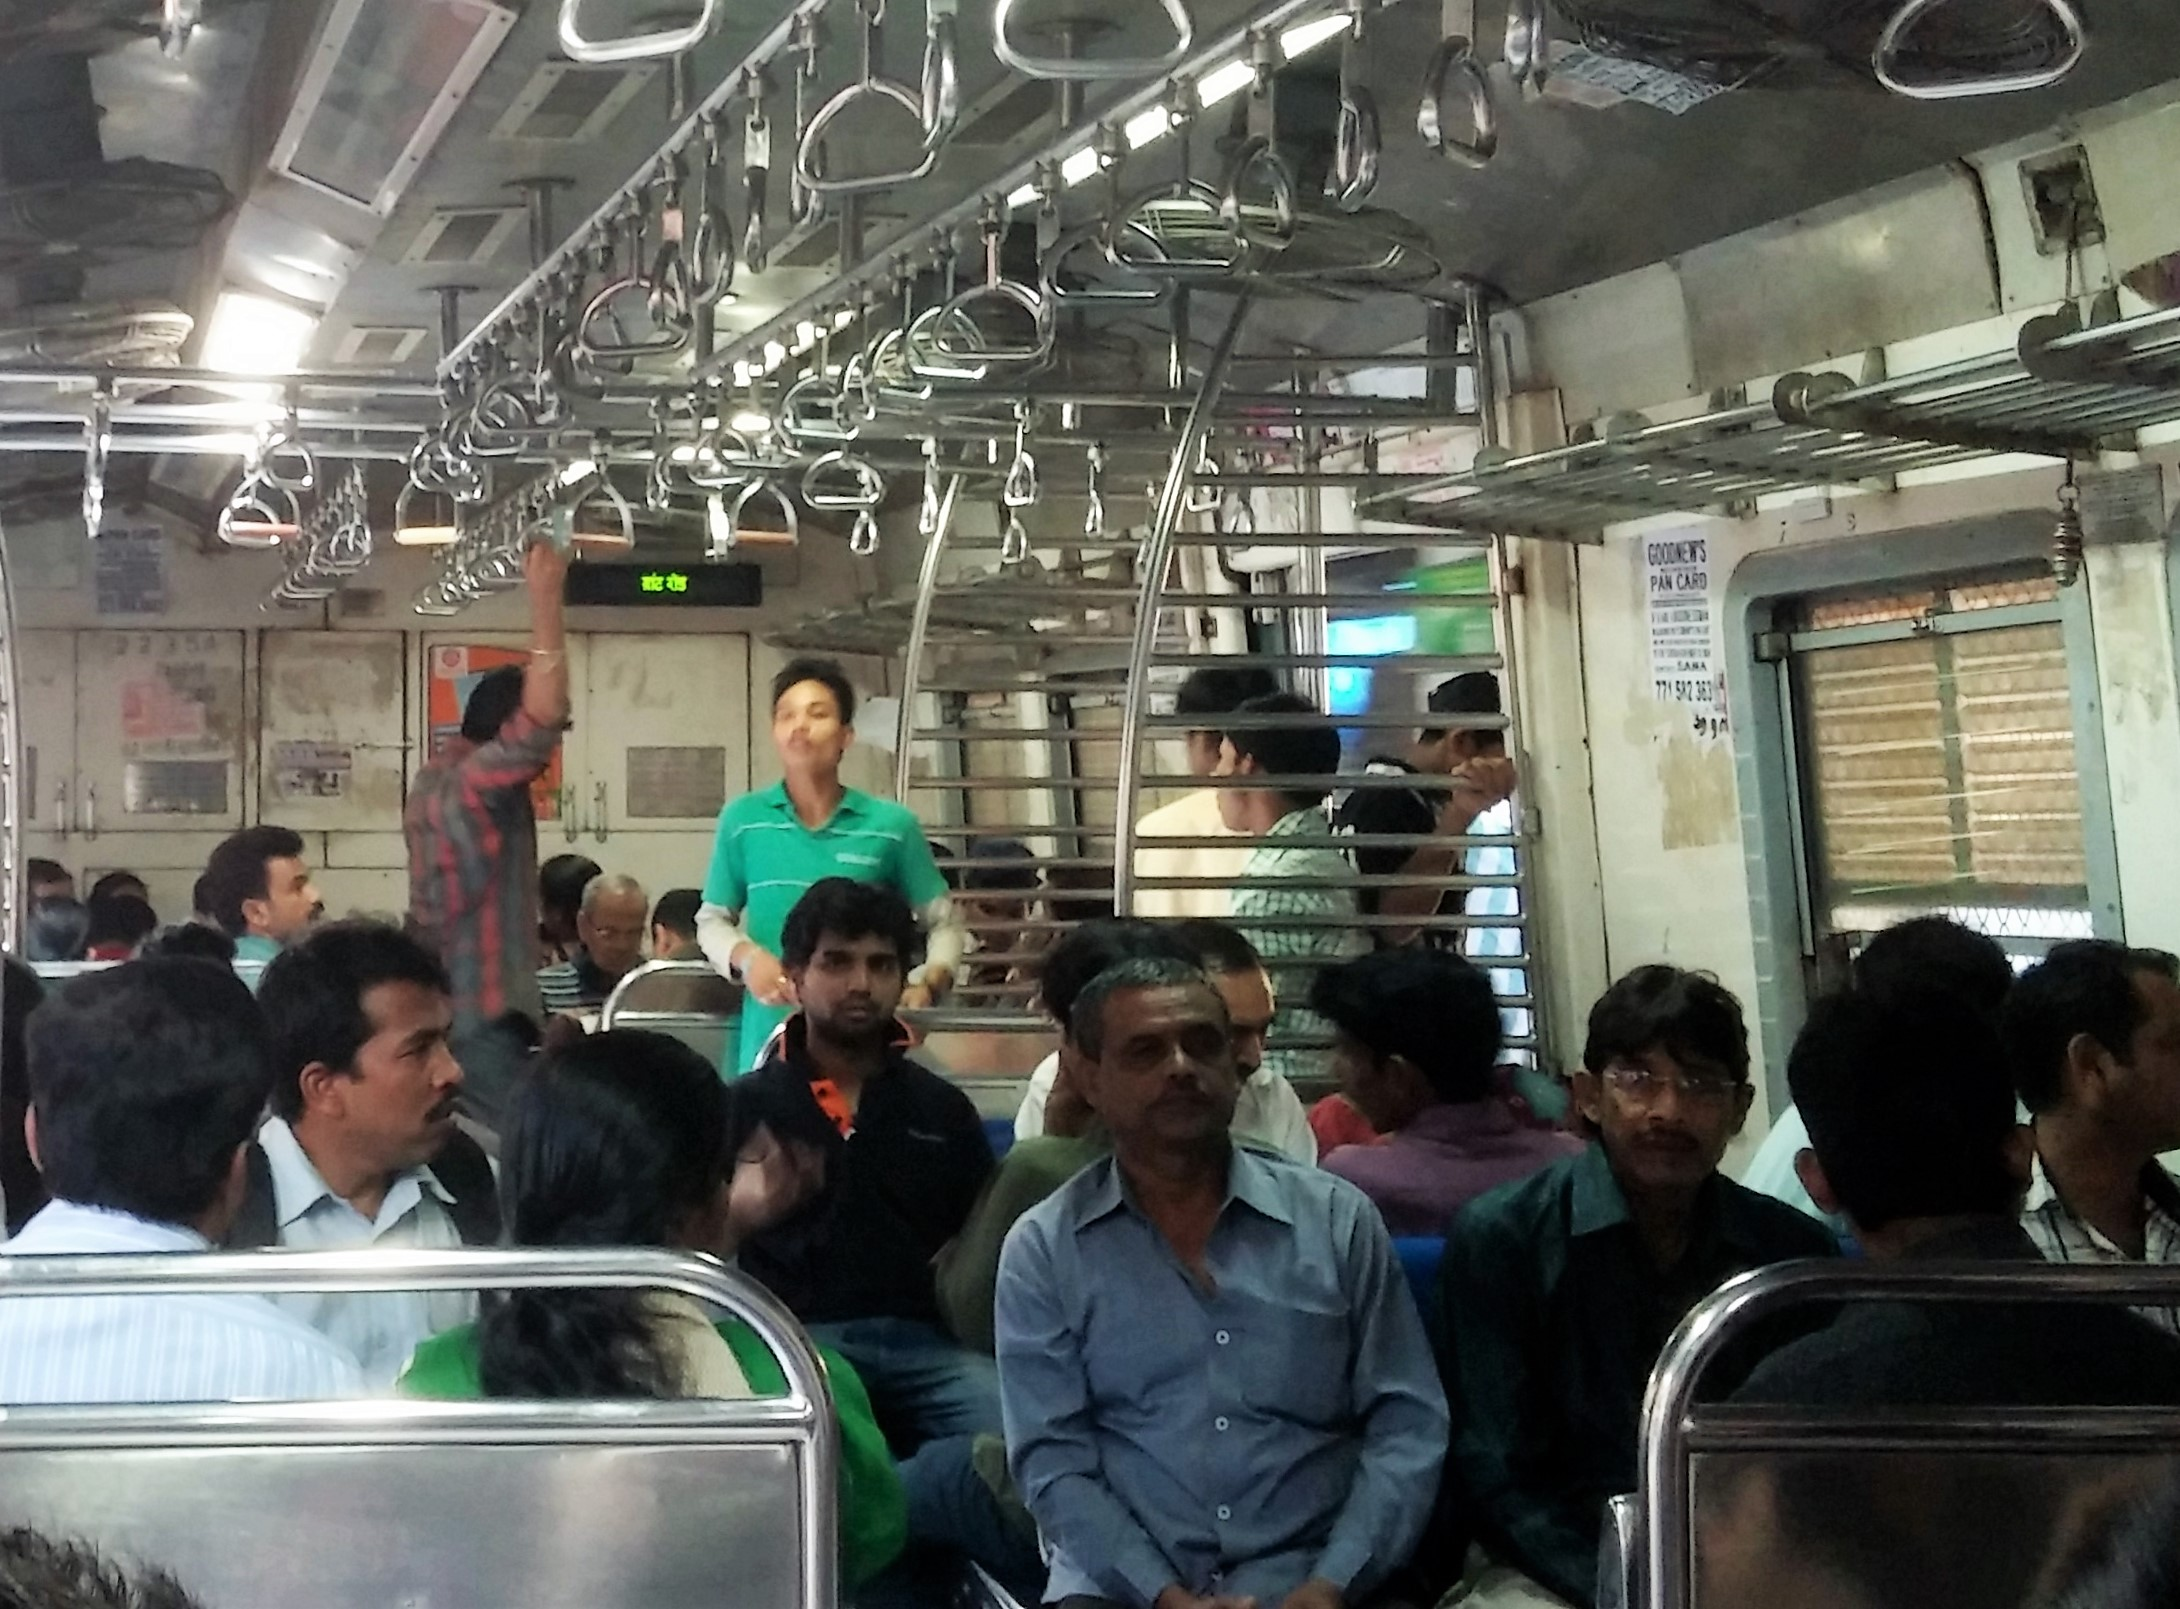 Mumbai train on a non-crowded day